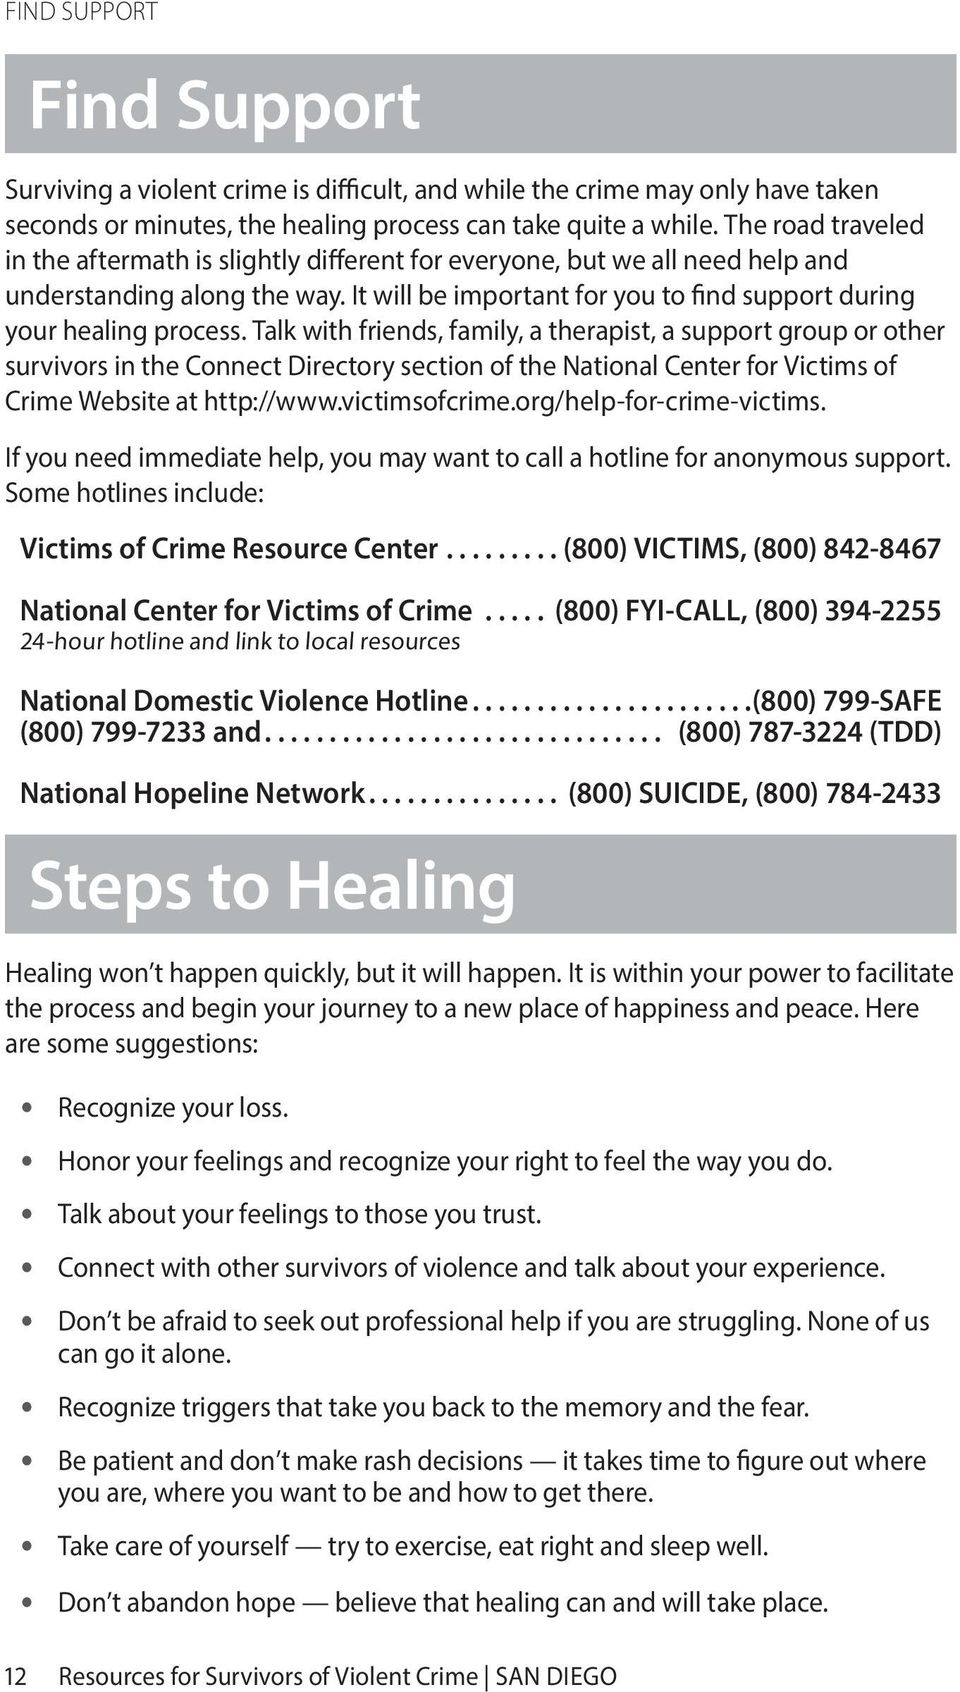 Talk with friends, family, a therapist, a support group or other survivors in the Connect Directory section of the National Center for Victims of Crime Website at http://www.victimsofcrime.